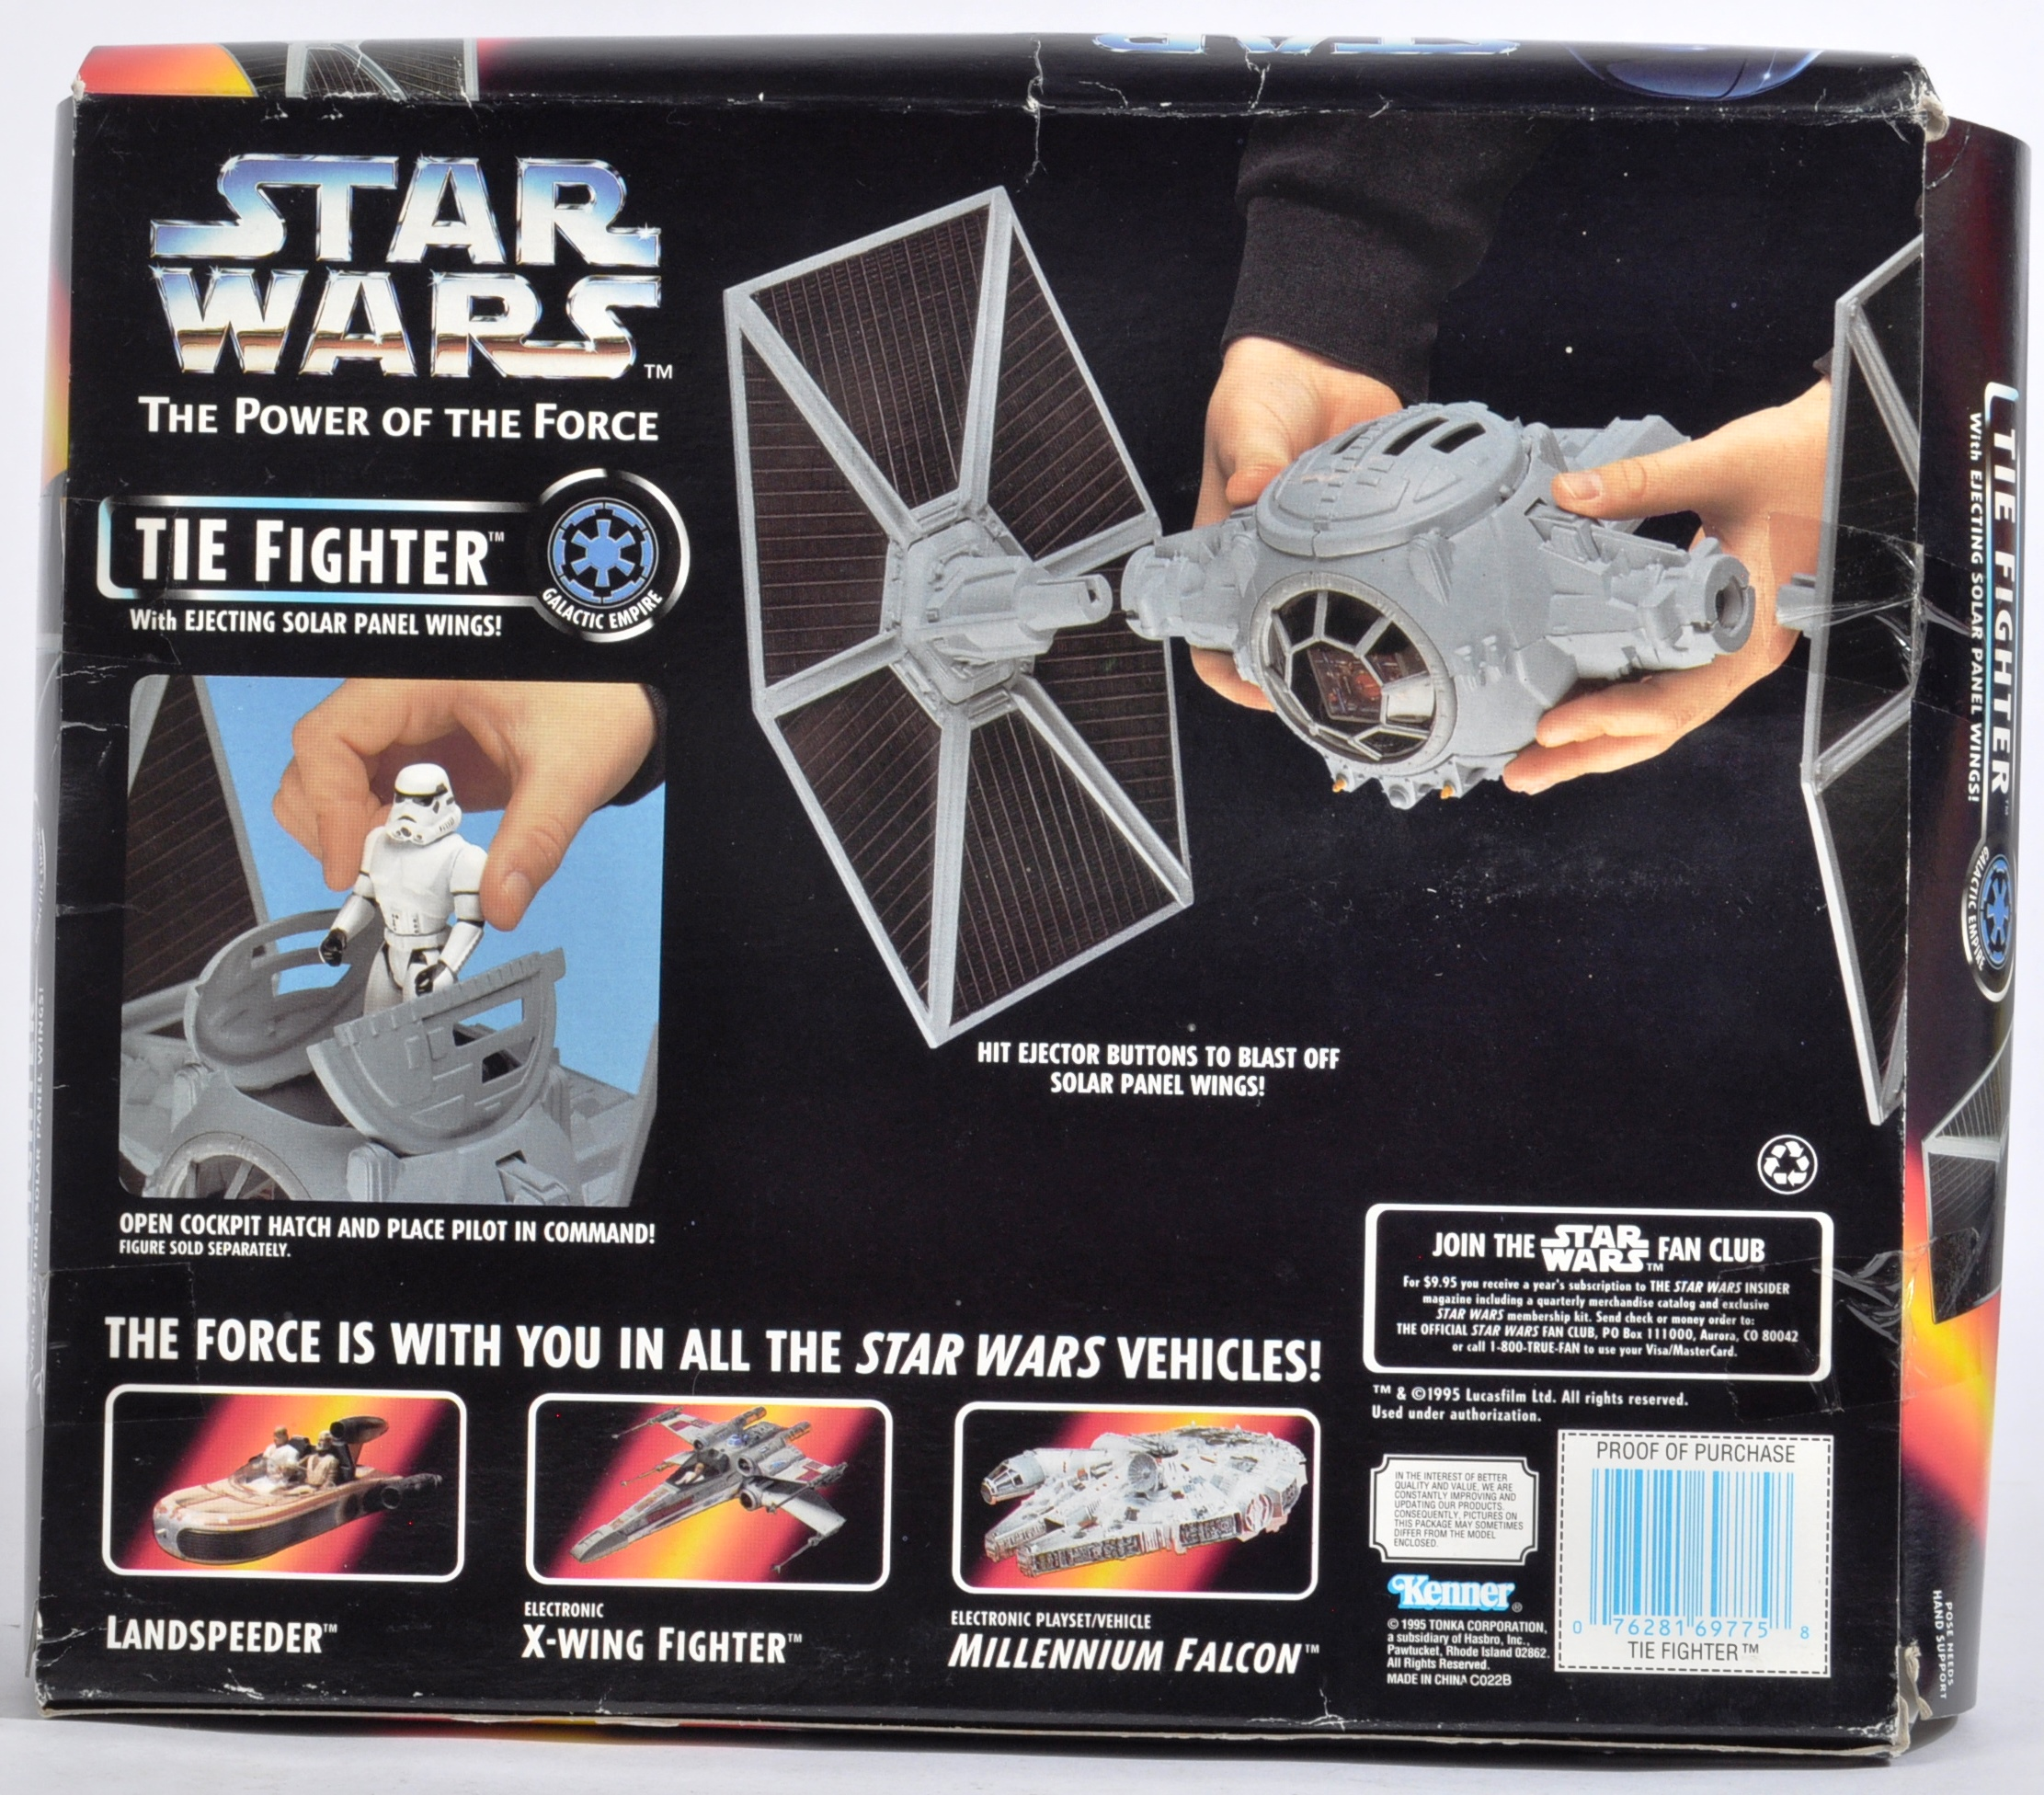 STAR WARS - COLLECTION OF KENNER POWER OF THE FORCES - Image 3 of 13